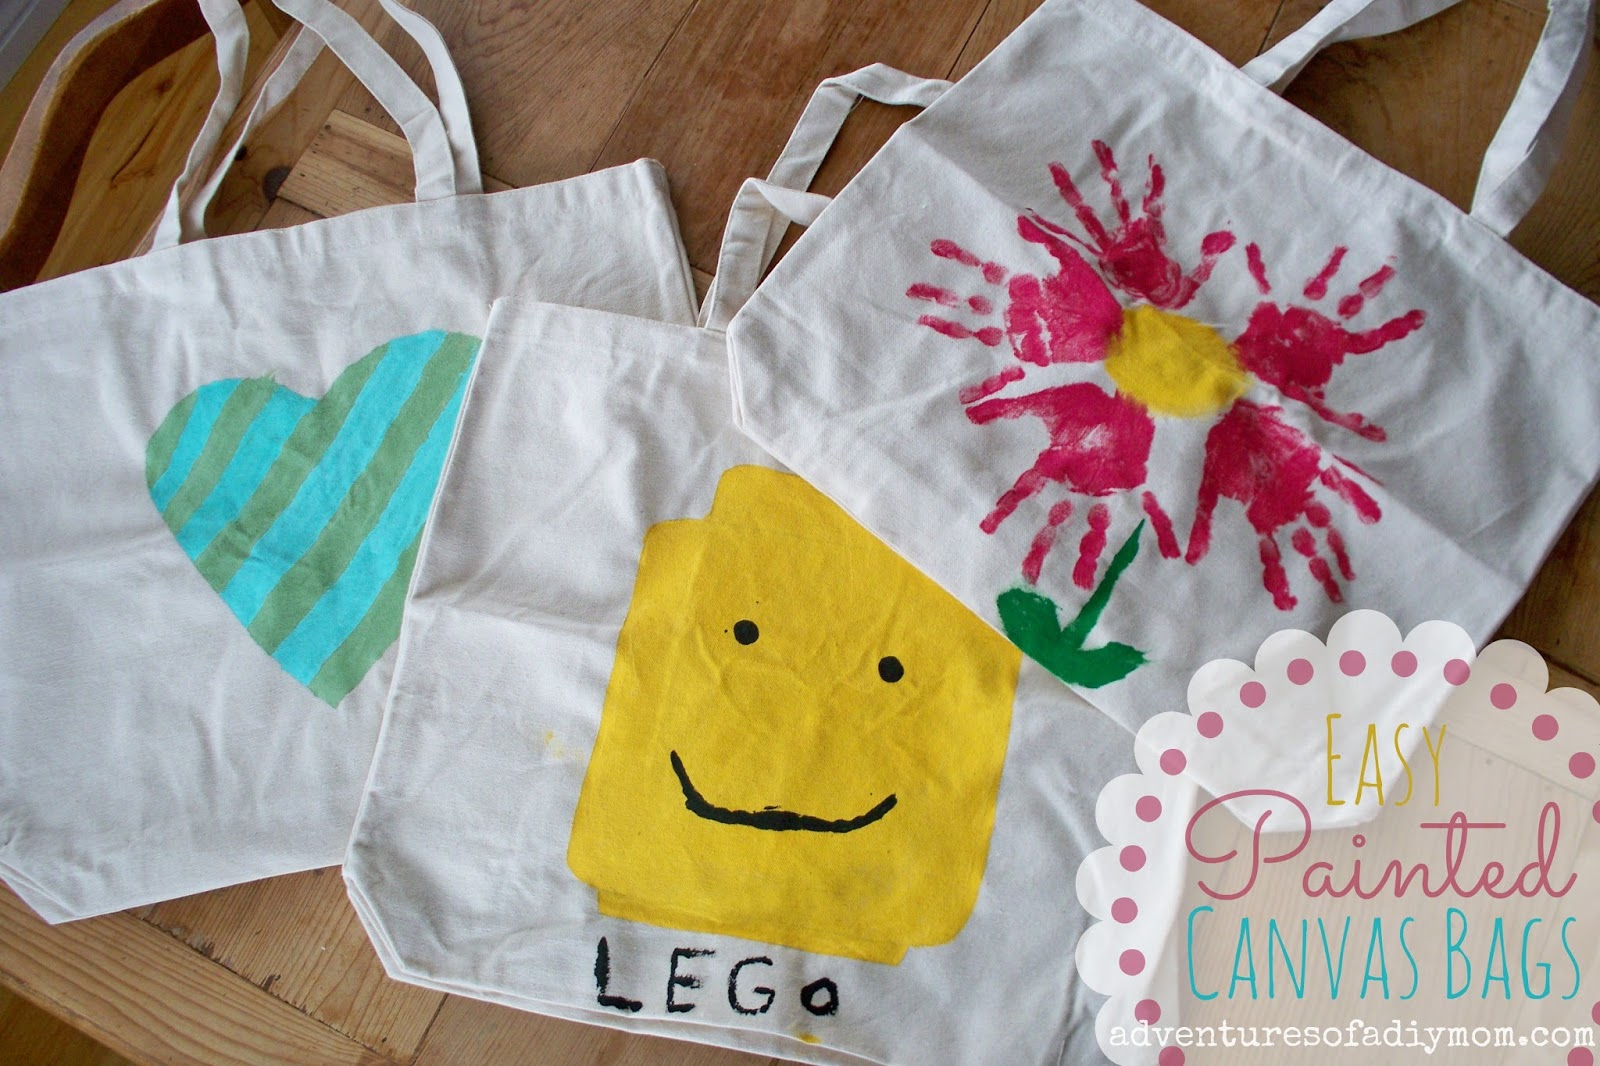 Easy DIY Painted Canvas Bags - Adventures of a DIY Mom